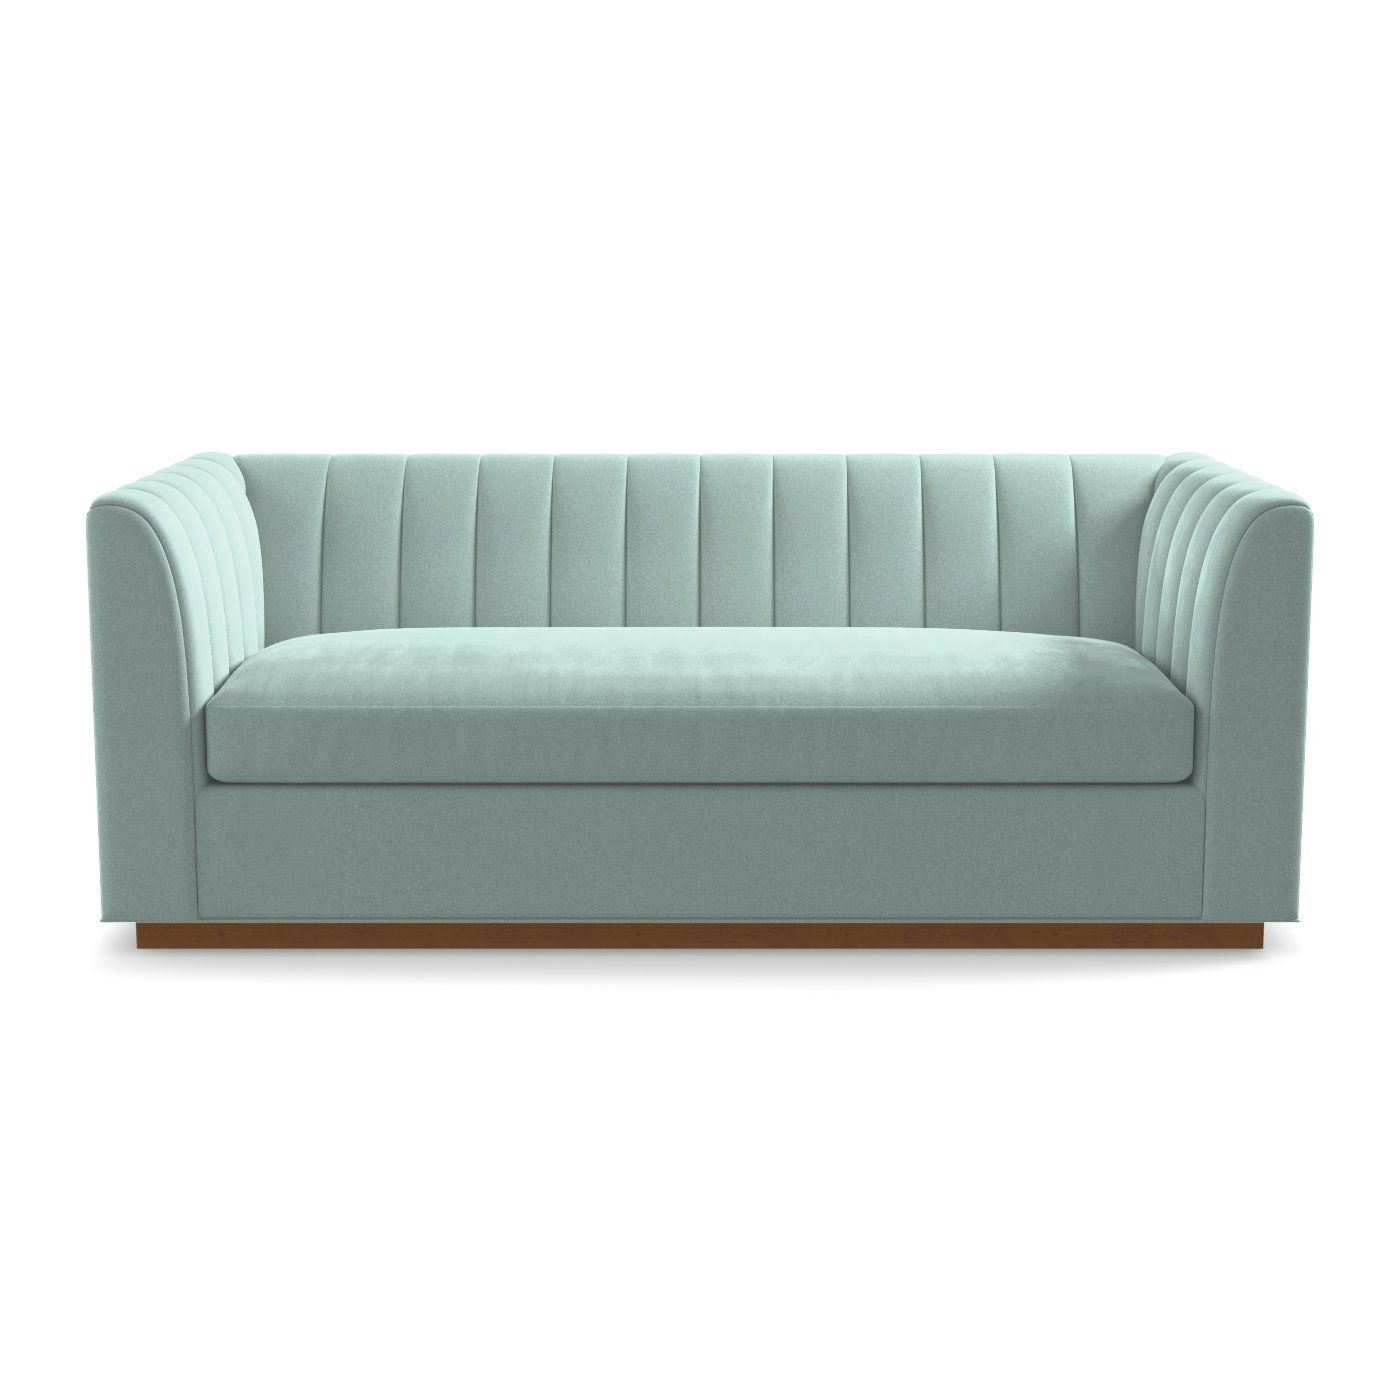 This Sleek And Oversized Sleeper Sofa Has A Channel Tufted Back That An Art Deco Flair With Modern Silhouette High Arms